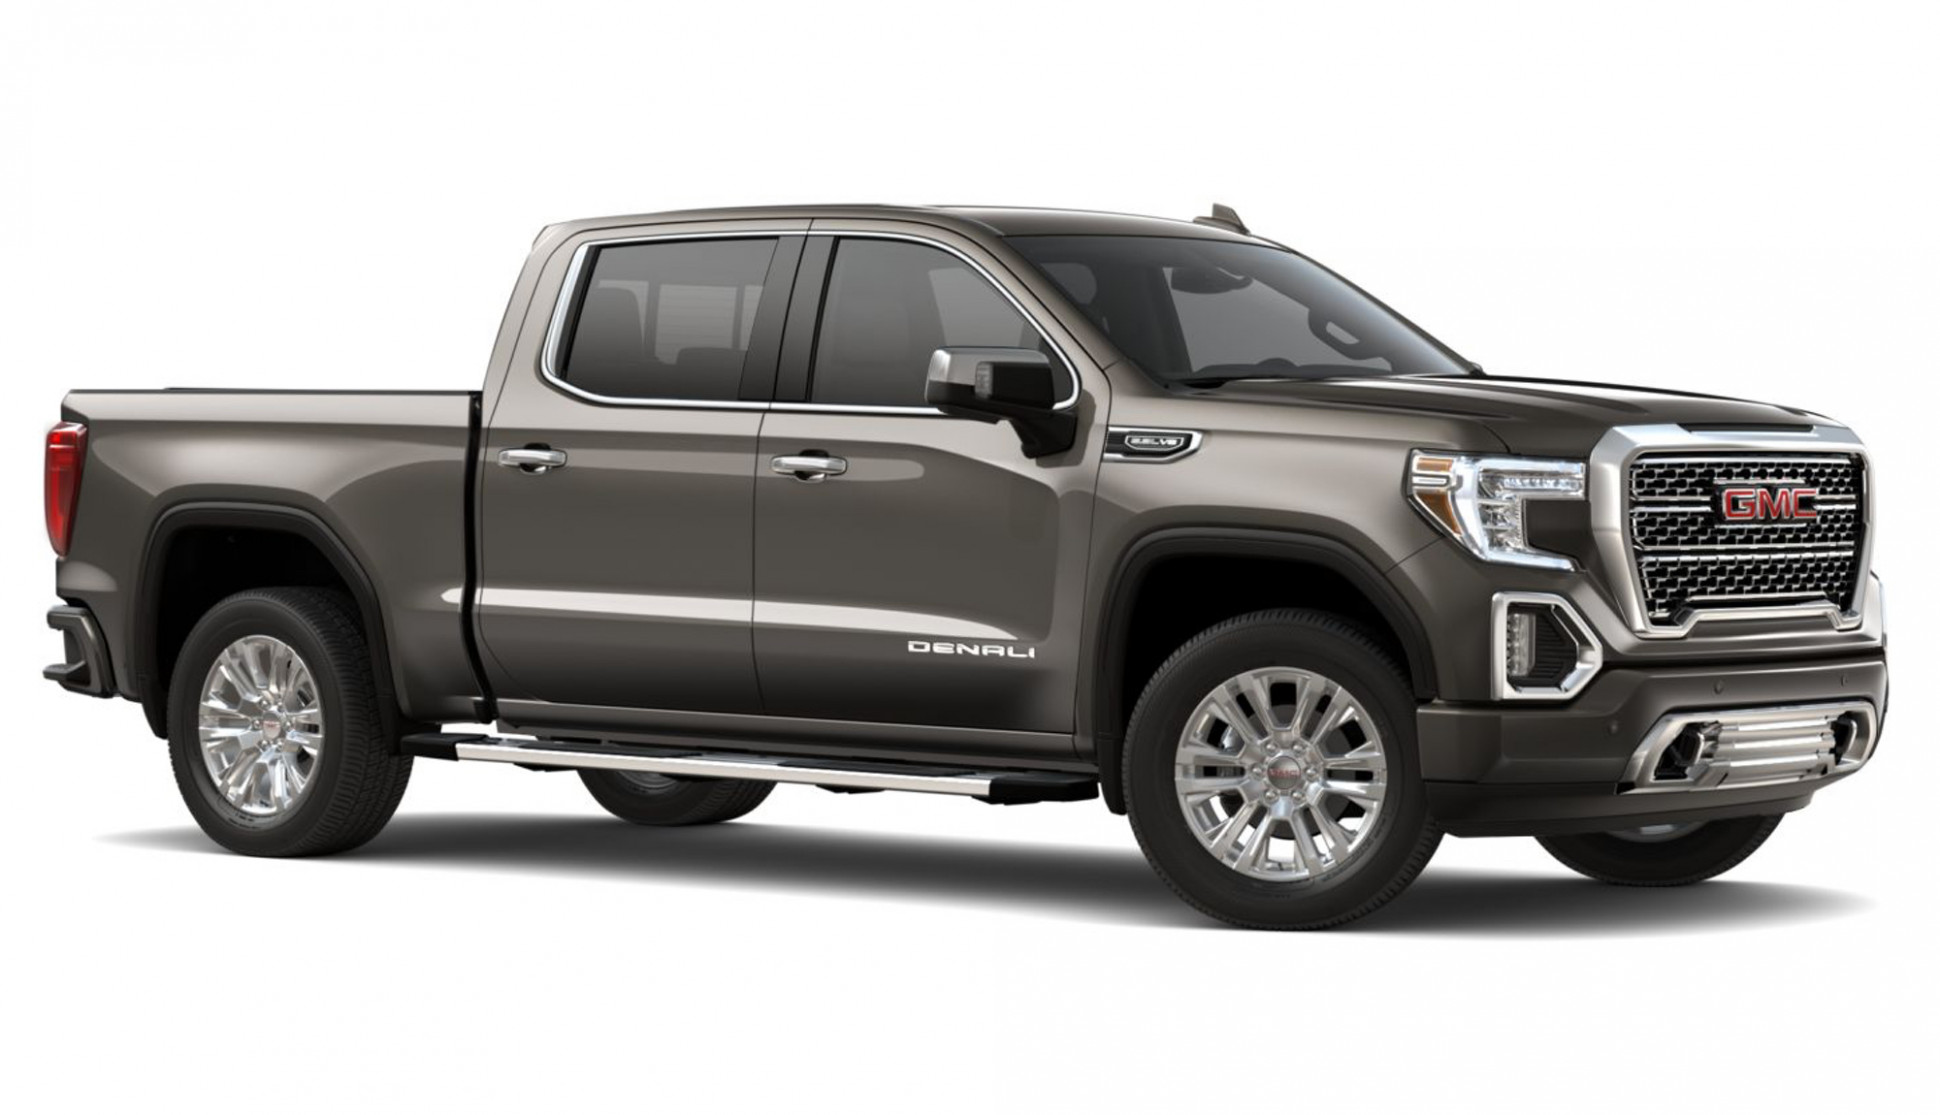 9 Sierra 9 Ditches This Paint Option, Gains New One | GM ..